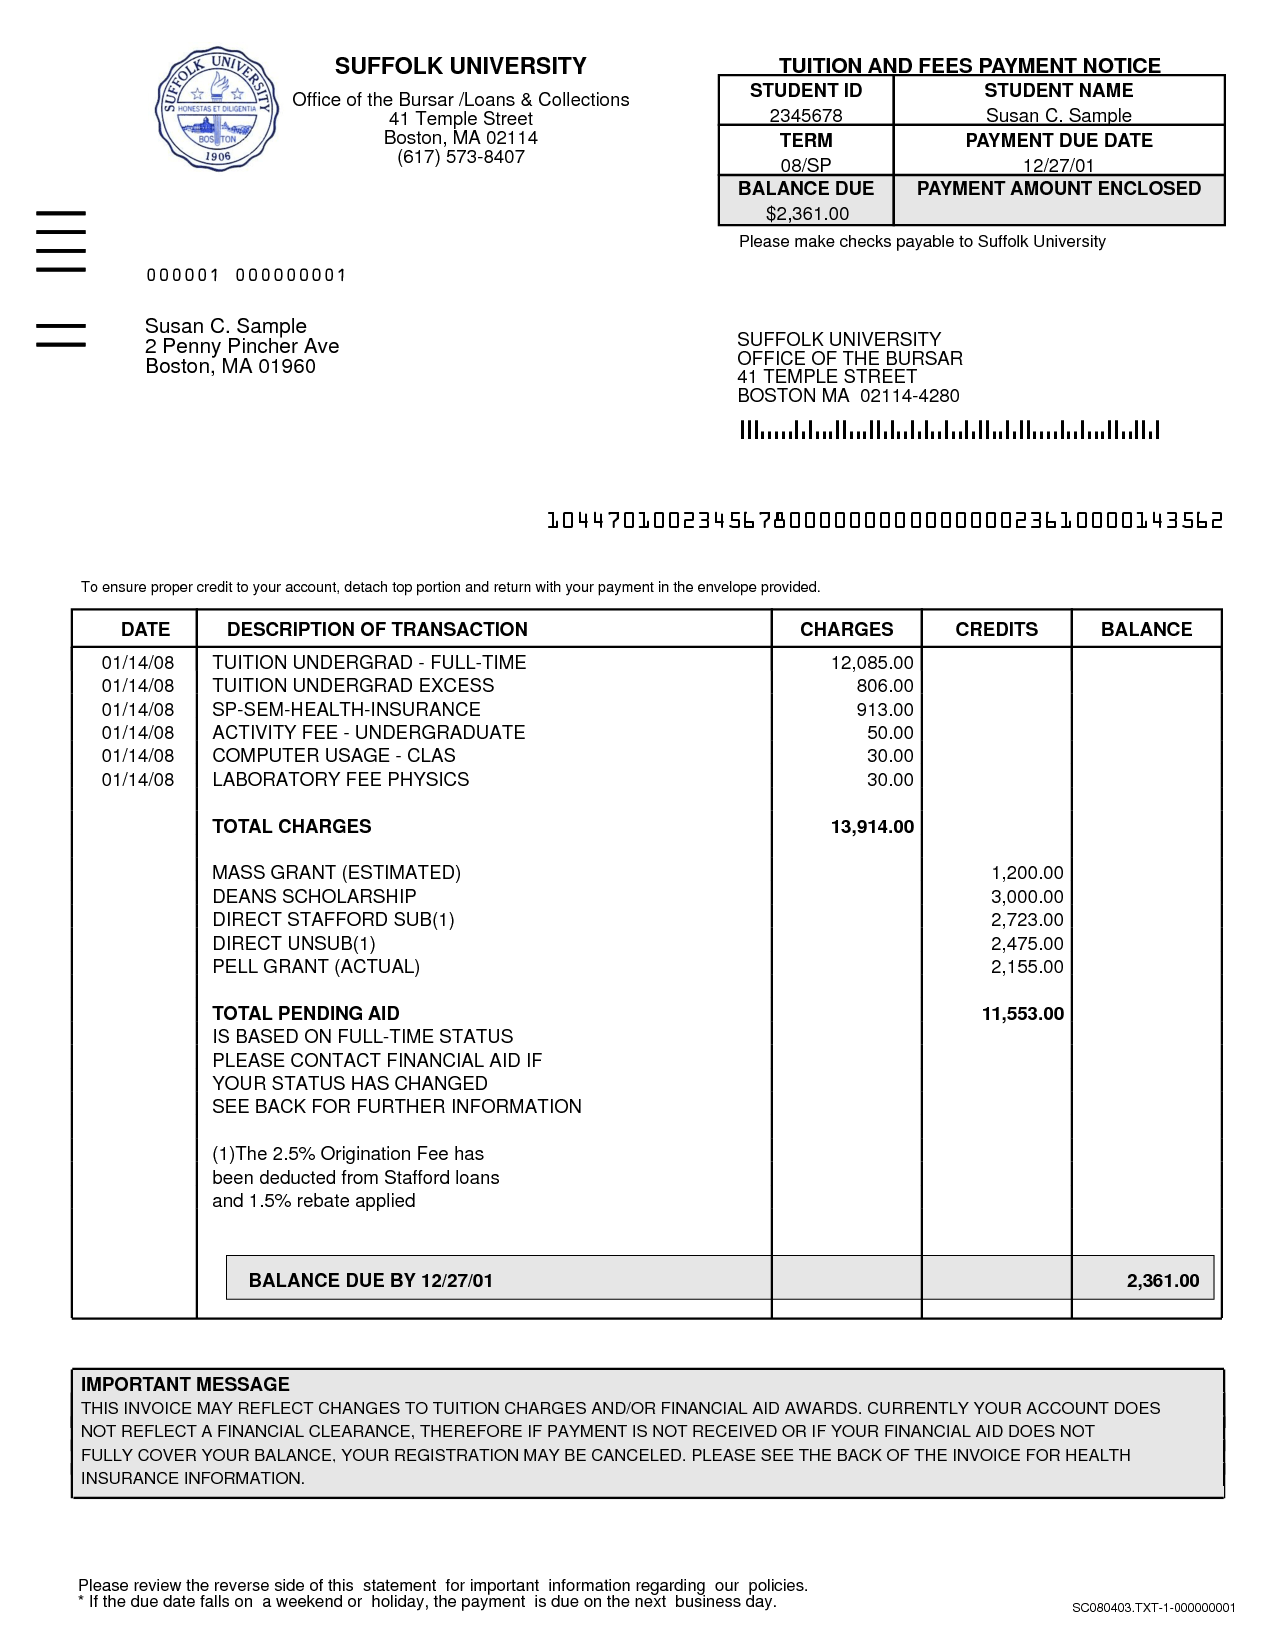 Template for Invoice In Excel and Legal Invoice Template Free Excel Templates